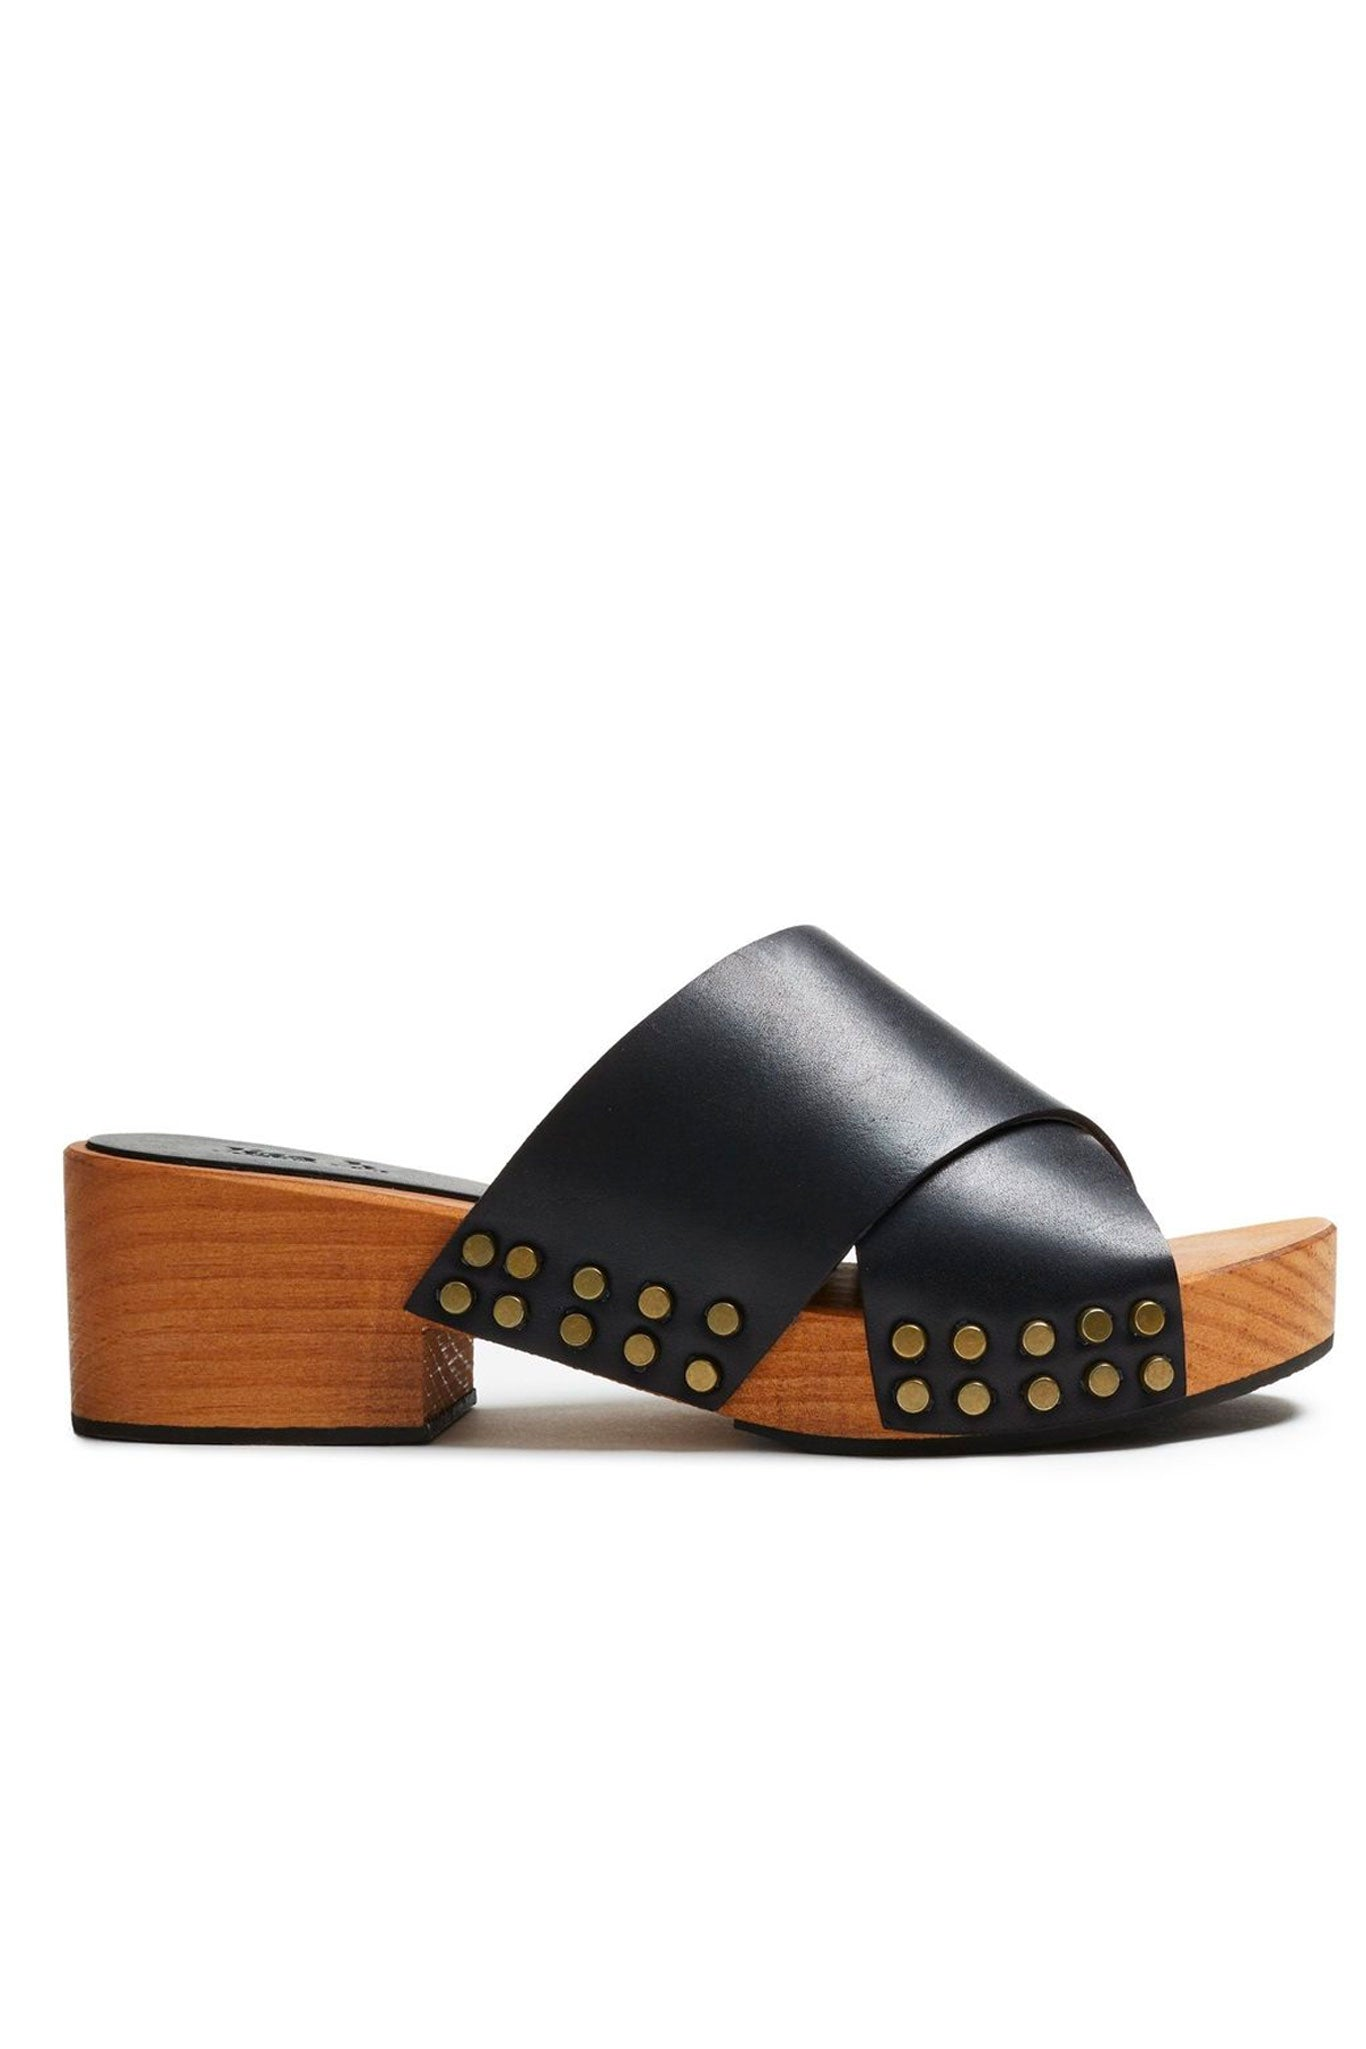 lisa b. Criss Cross Sandal